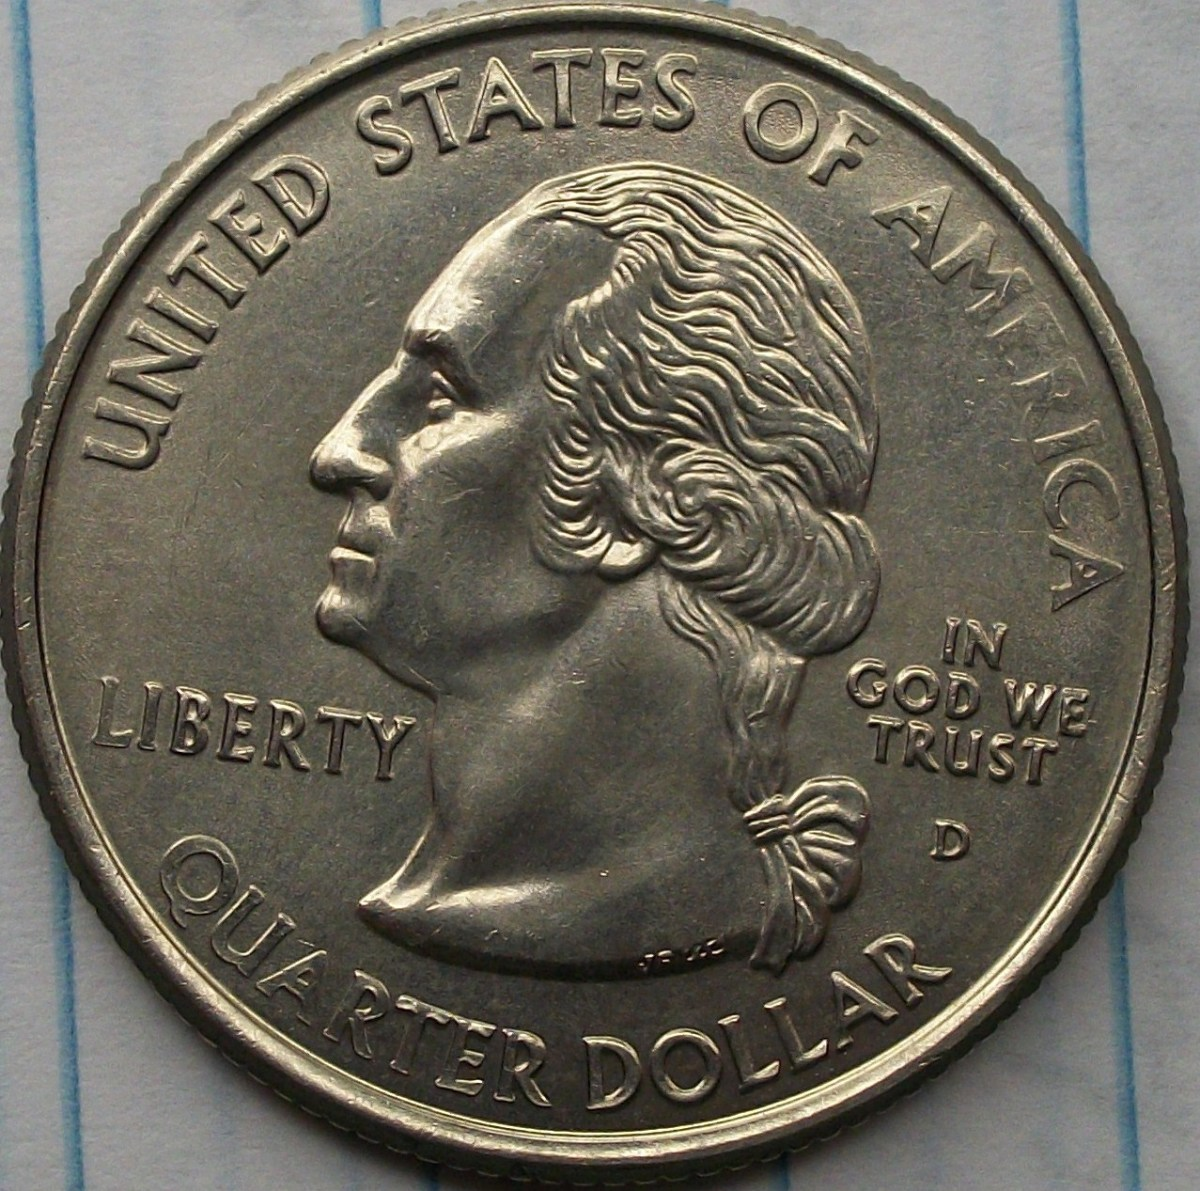 another view of the obverse.